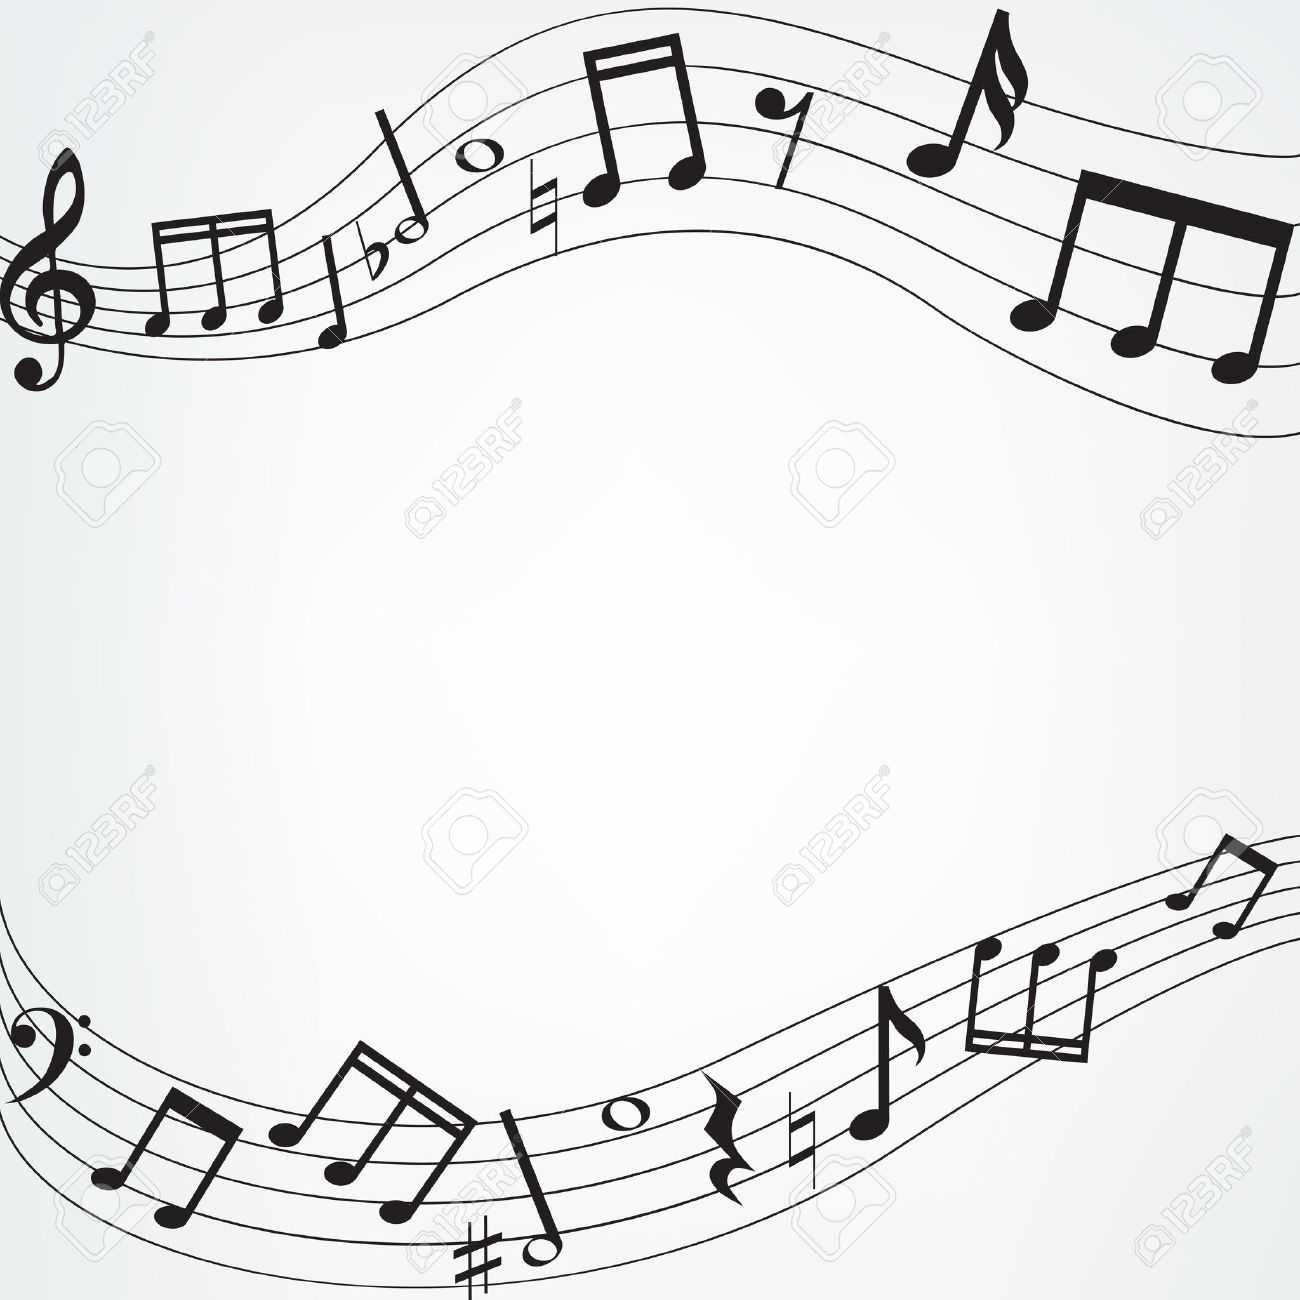 Musical notes staff background on white vector by tassel78 image - Sheet Music Background With Music Notes Border